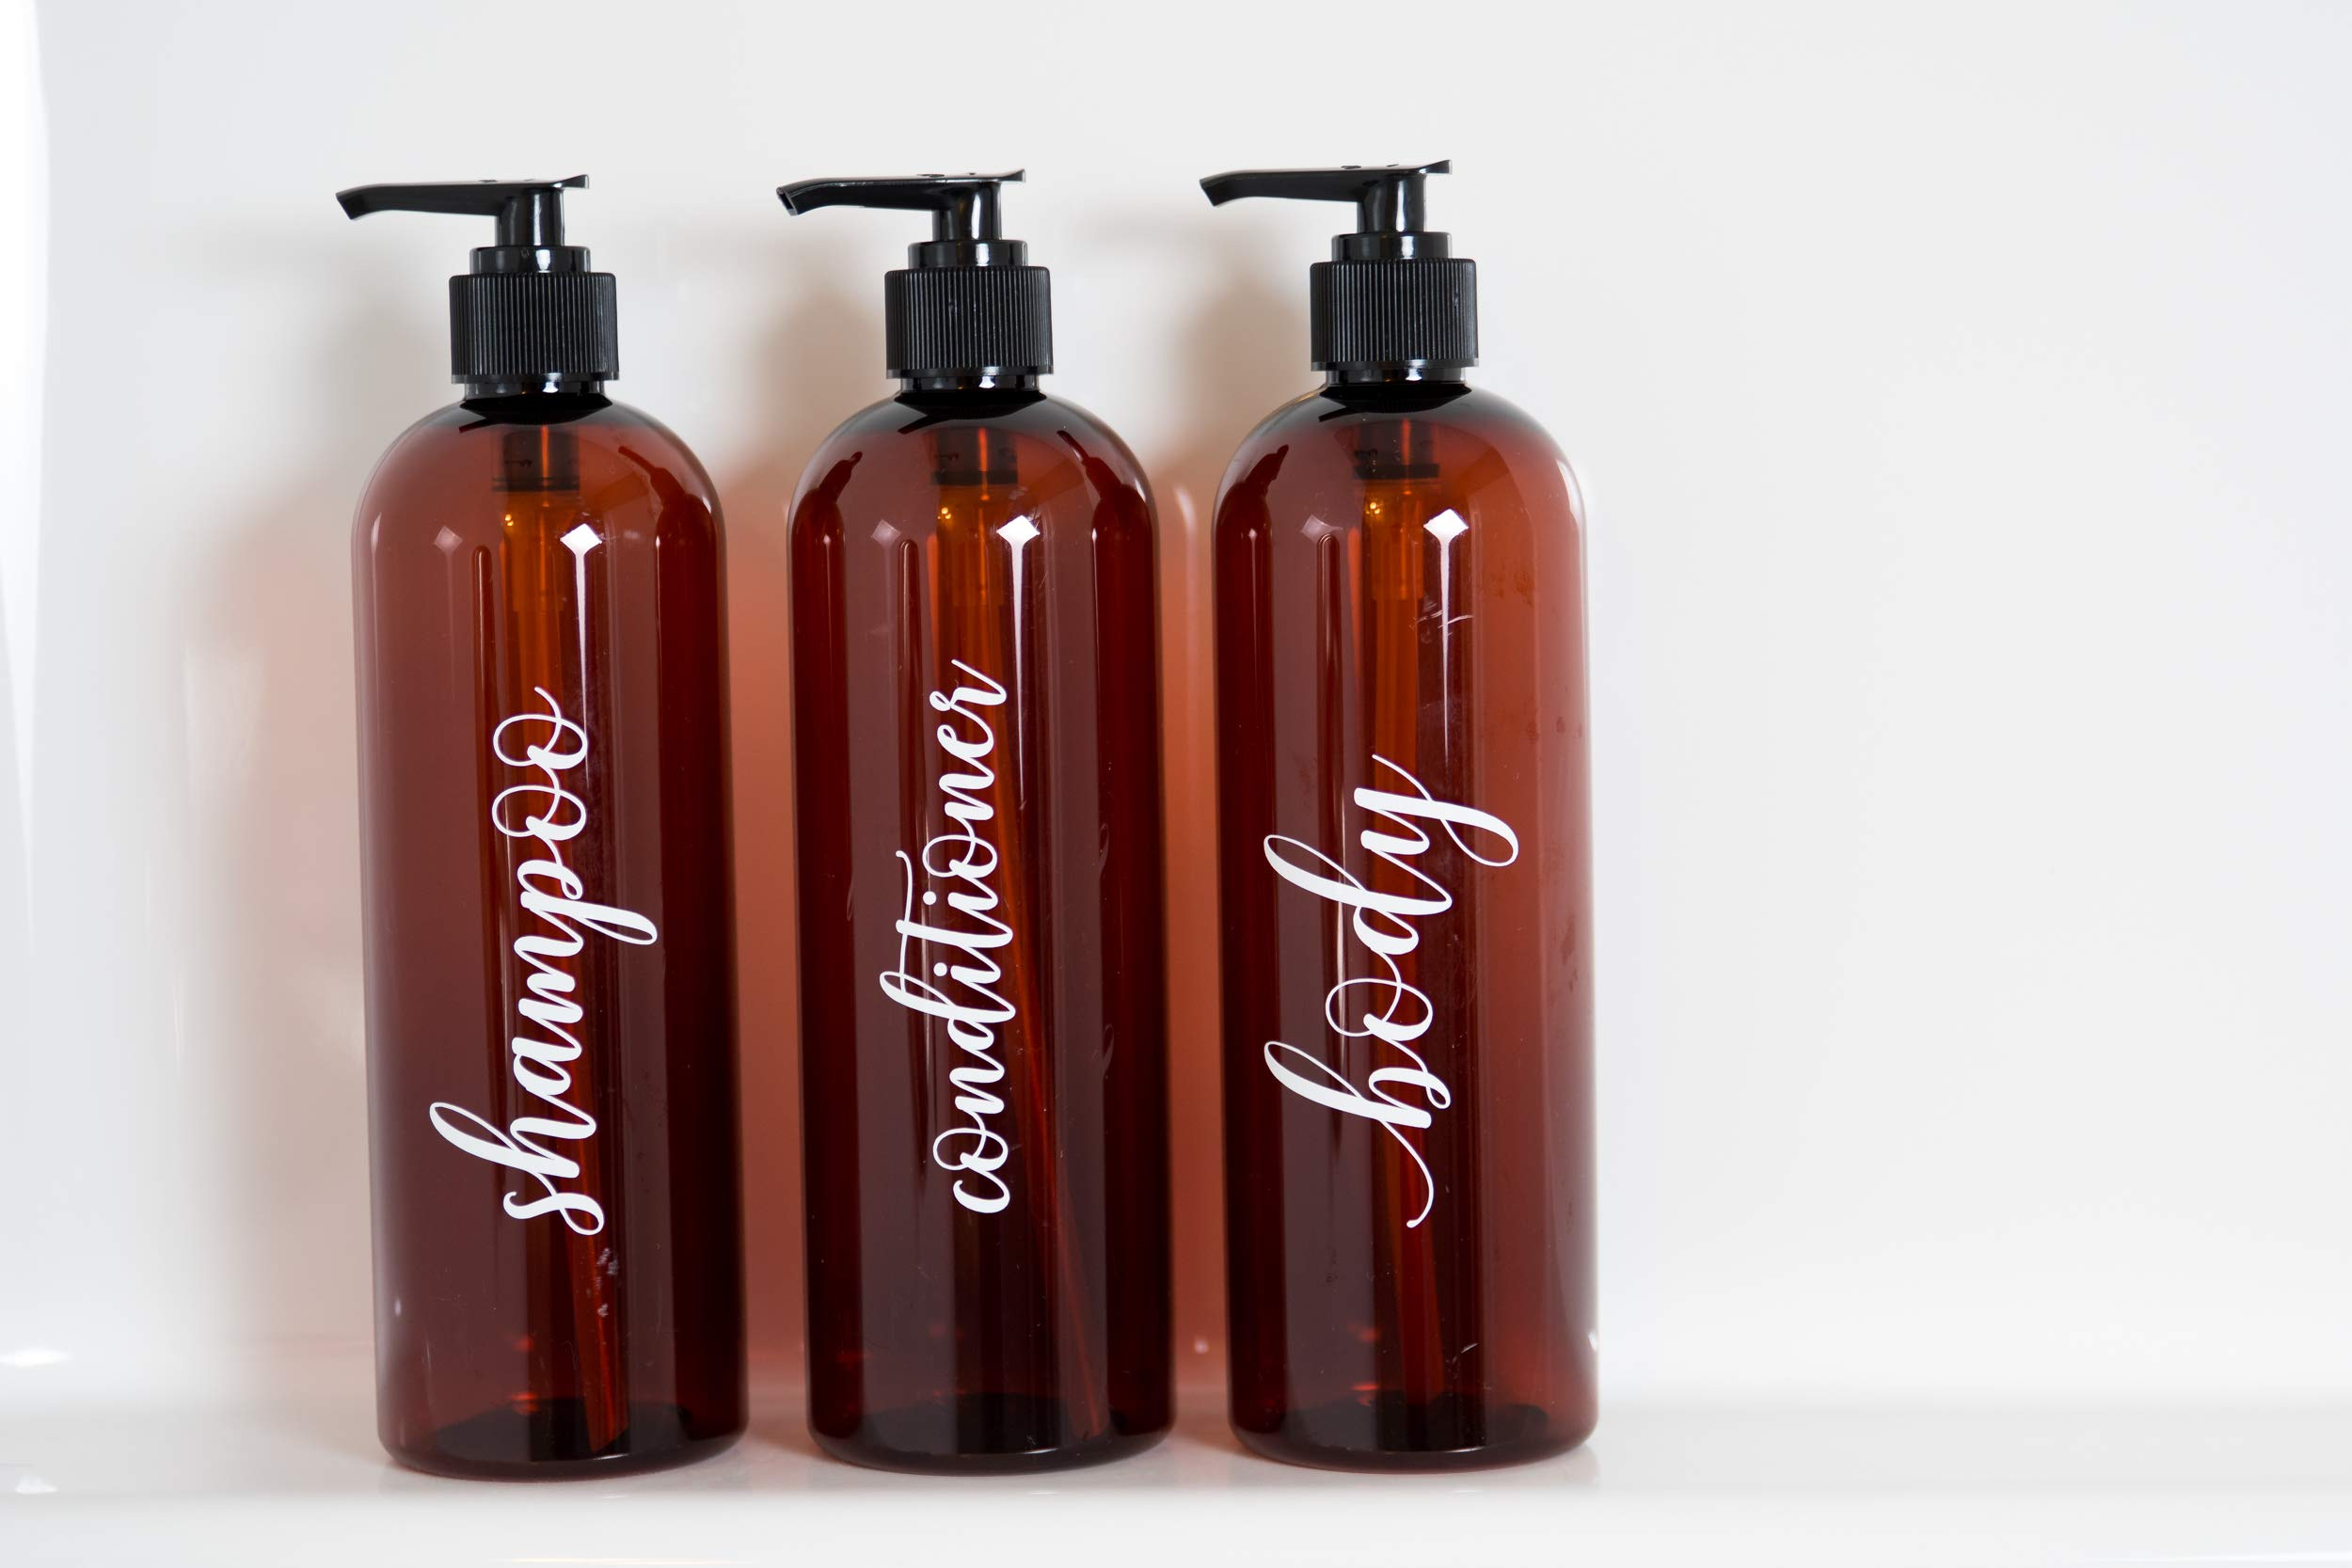 Heartland Lettering Labeled Shower Bottles Refillable, Amber Plastic Bottles with Pump 16 oz, Set of 3, Shampoo Conditioner and Body Wash Dispensers for Shower by Heartland Lettering